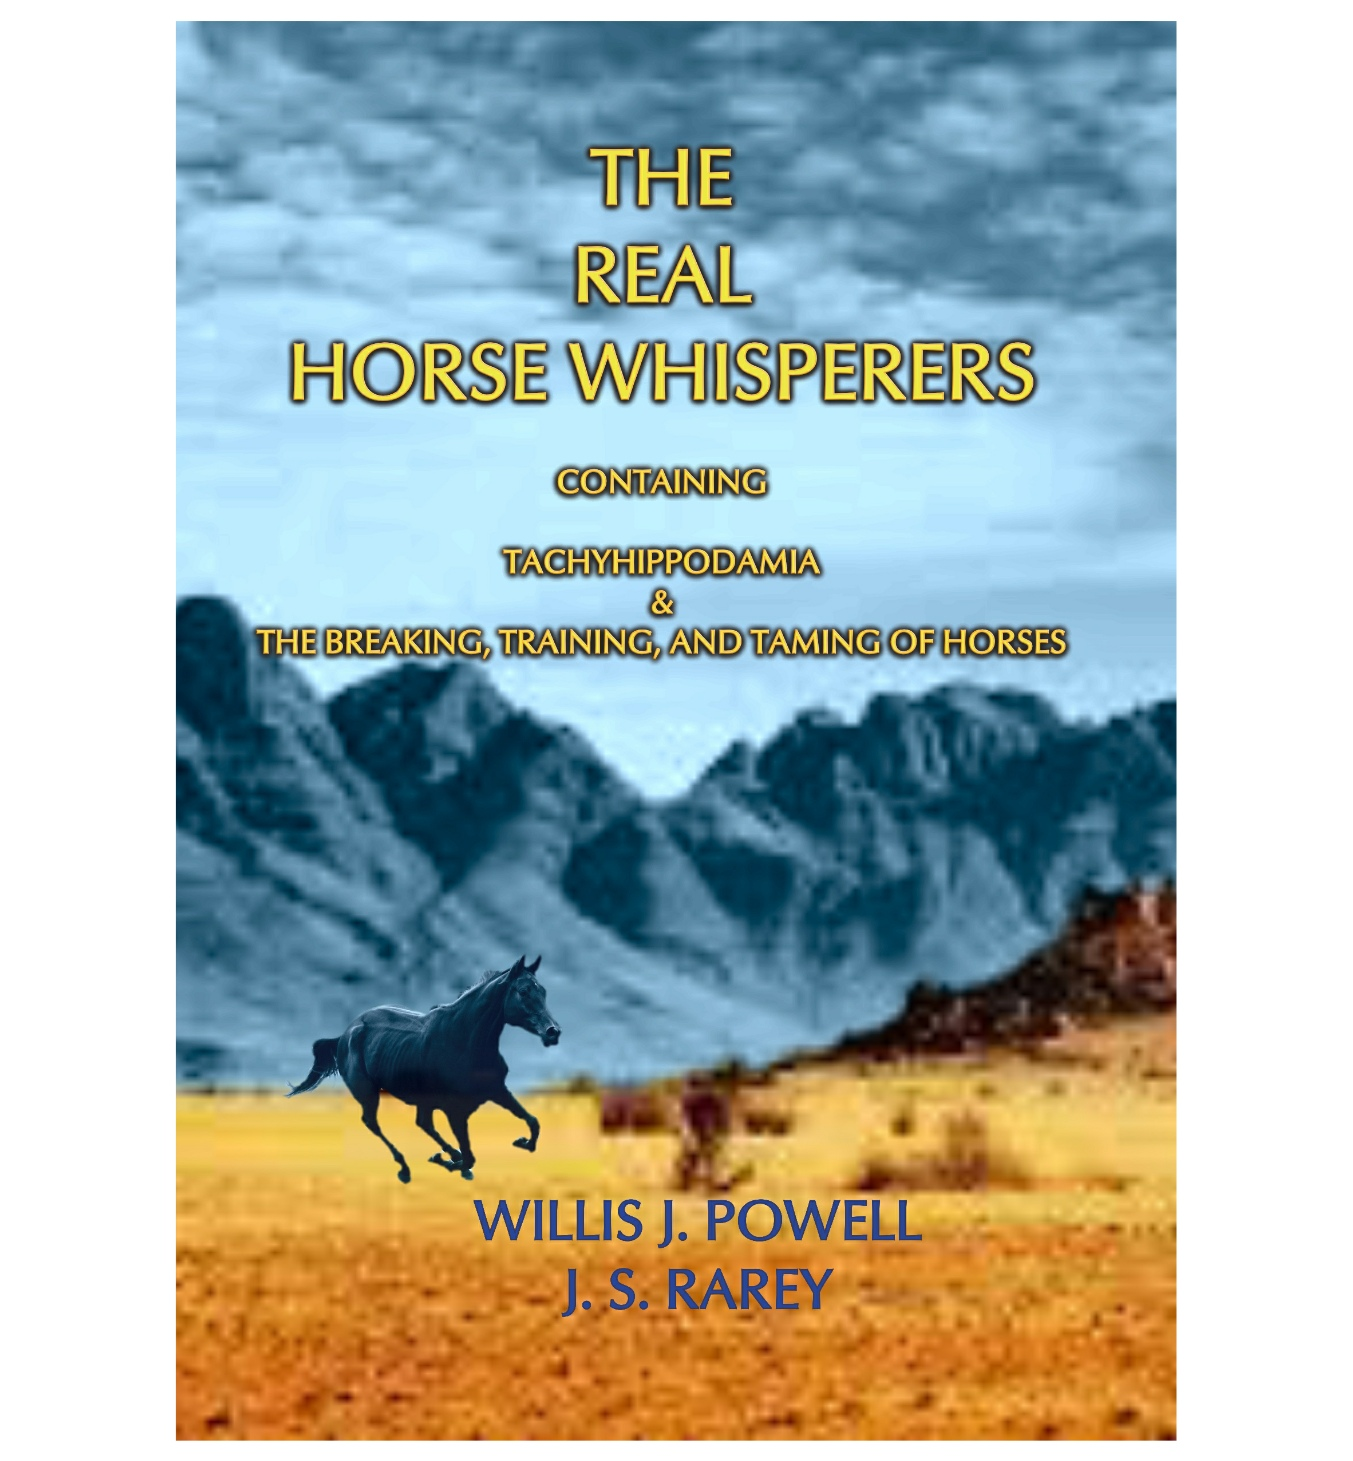 The Real Horse Whisperers - cover.jpg